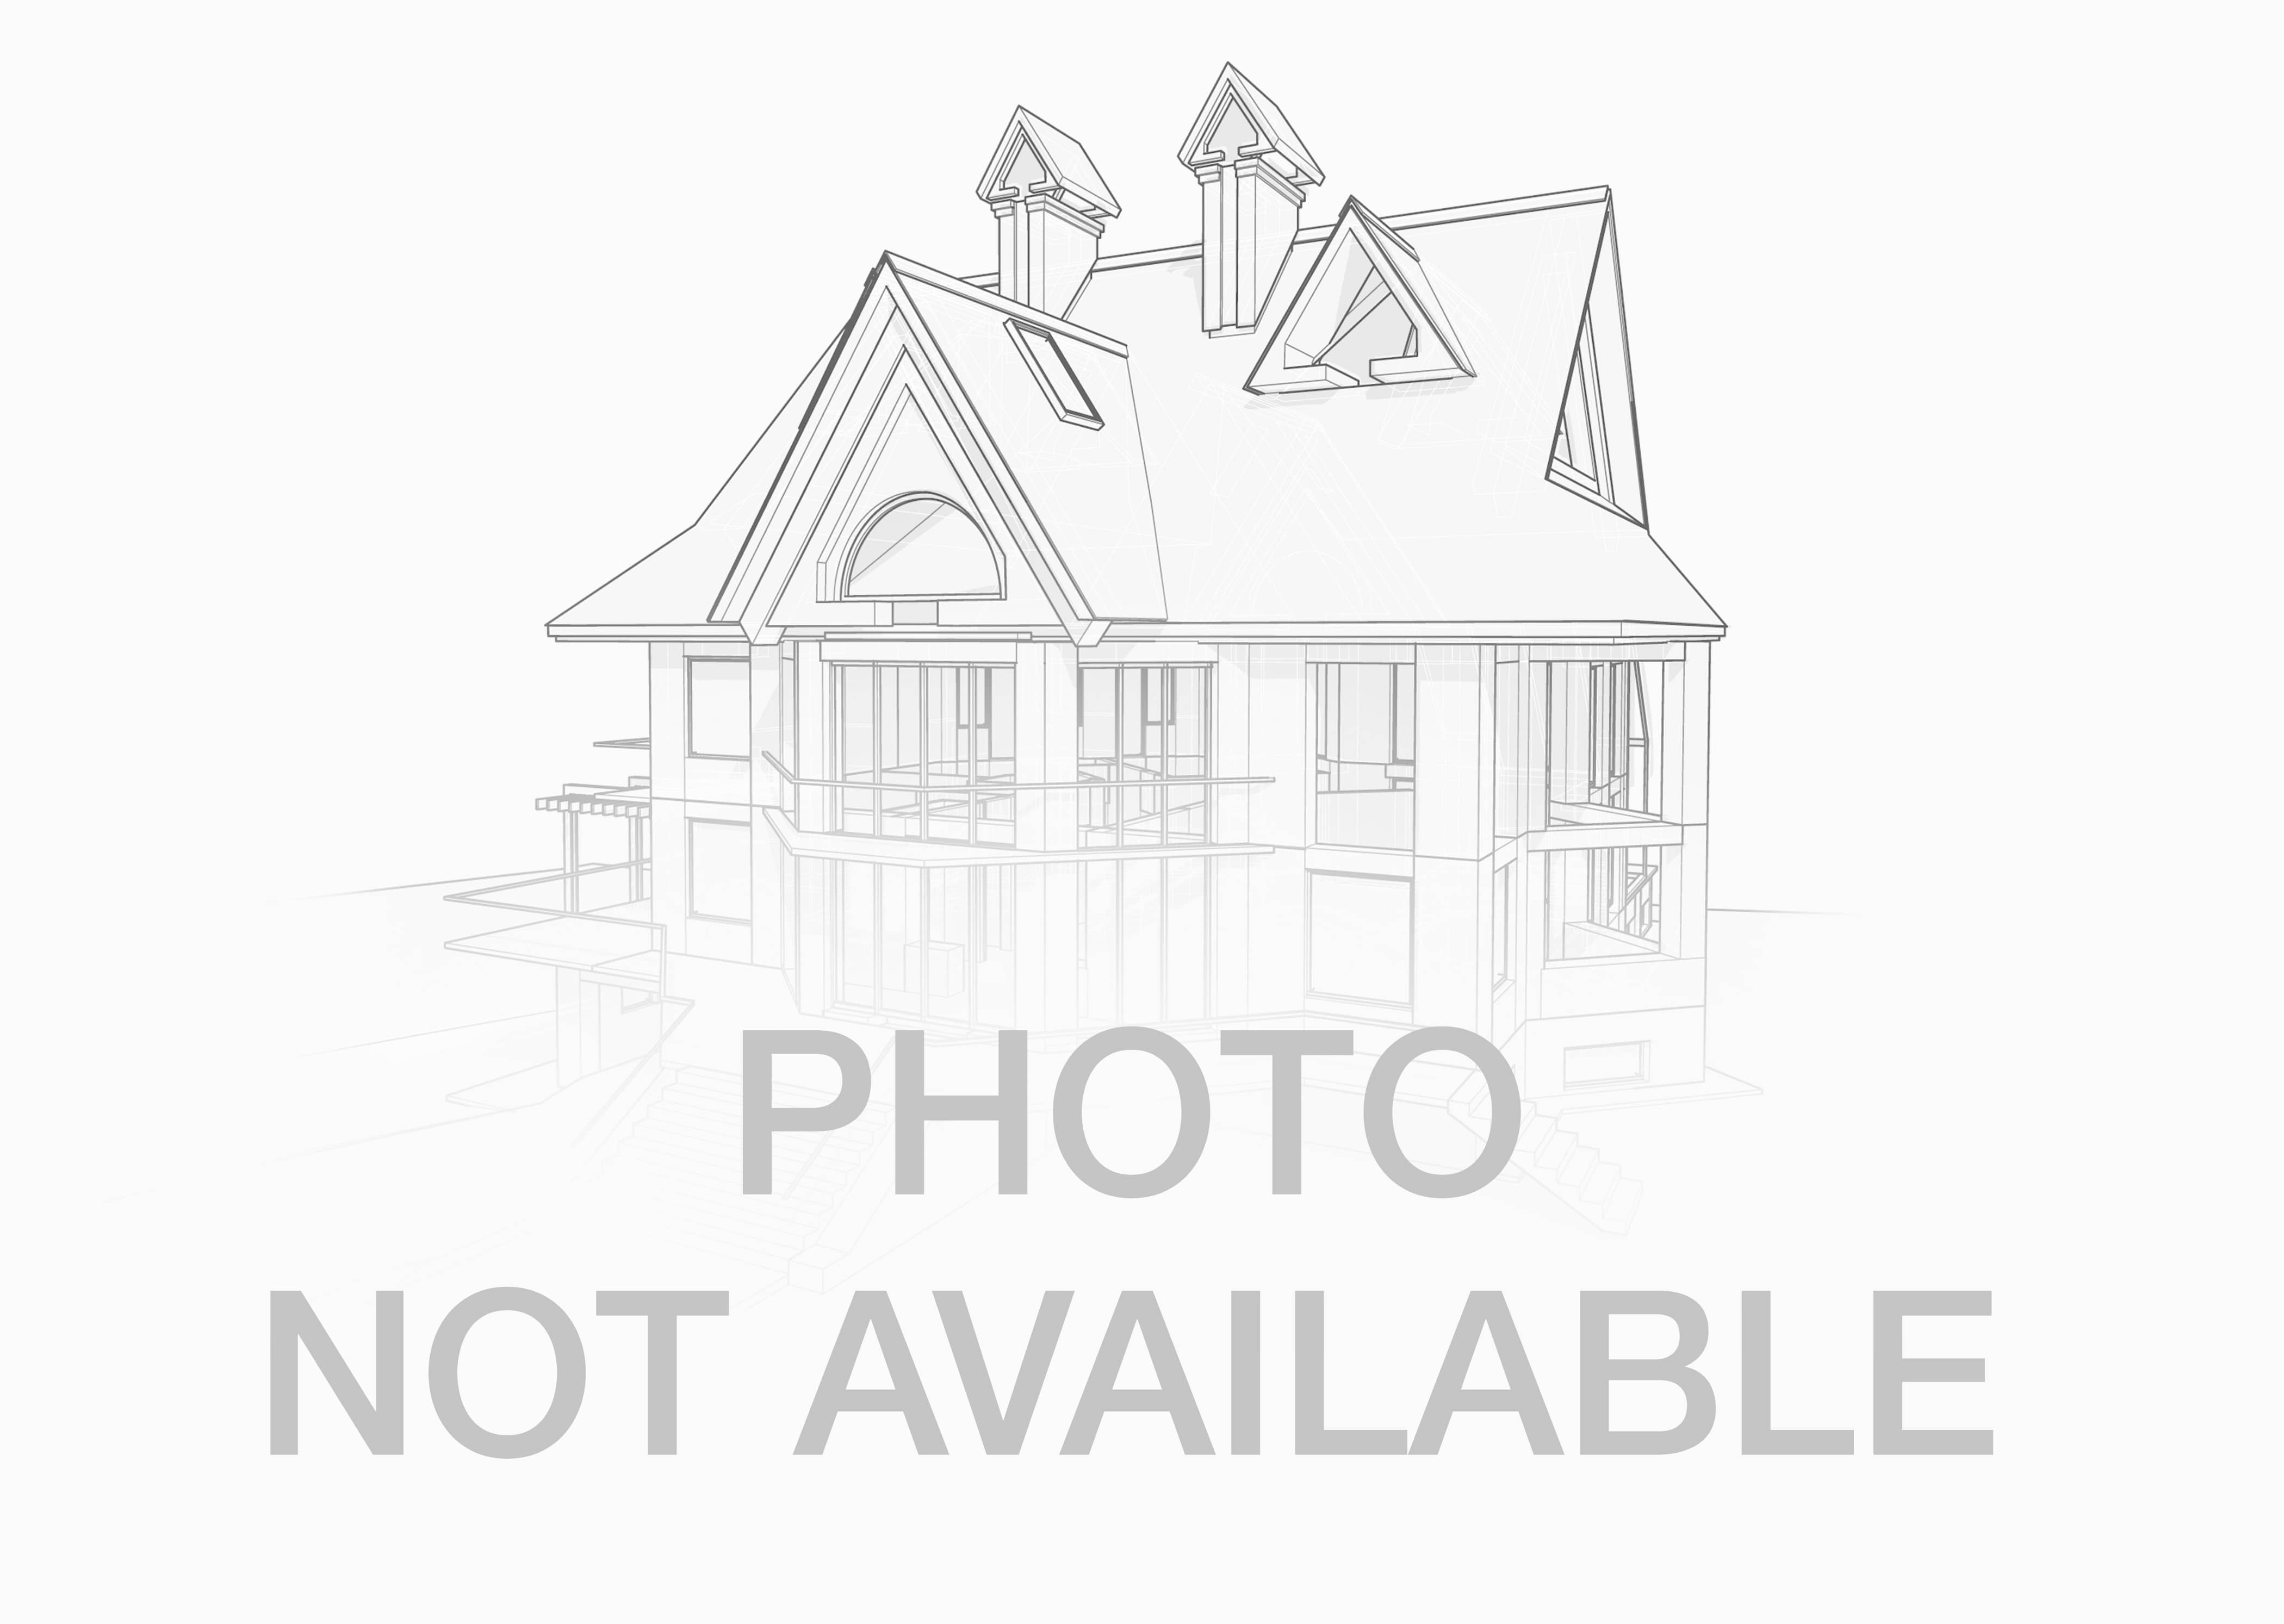 homes for sale in manheim pa - 28 images - 783 pearl ave